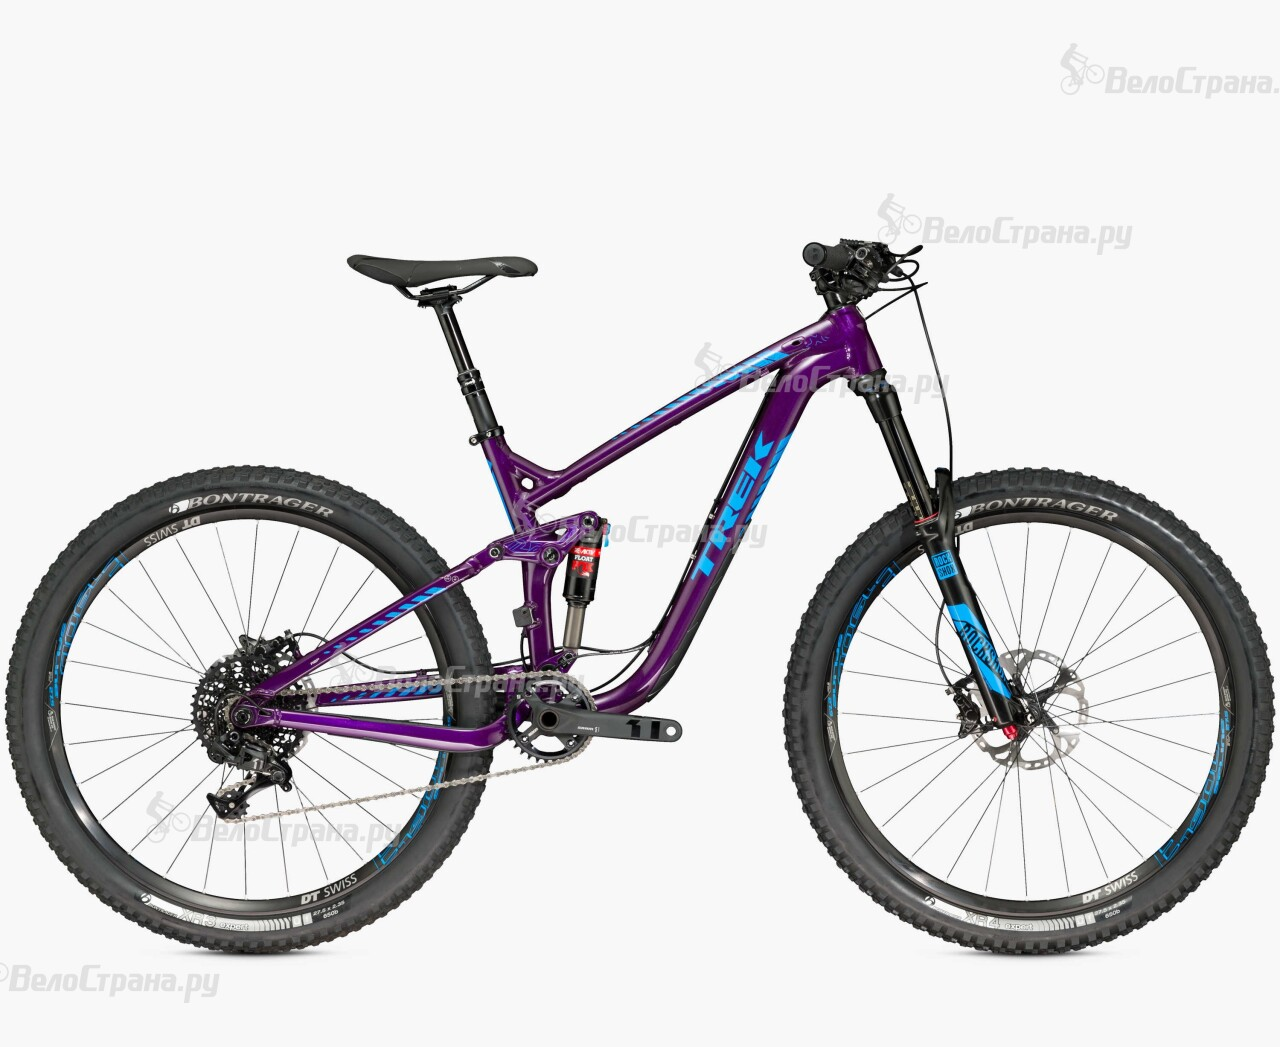 Велосипед Trek Remedy 9 27.5 (2016) велосипед trek remedy 7 27 5 2016